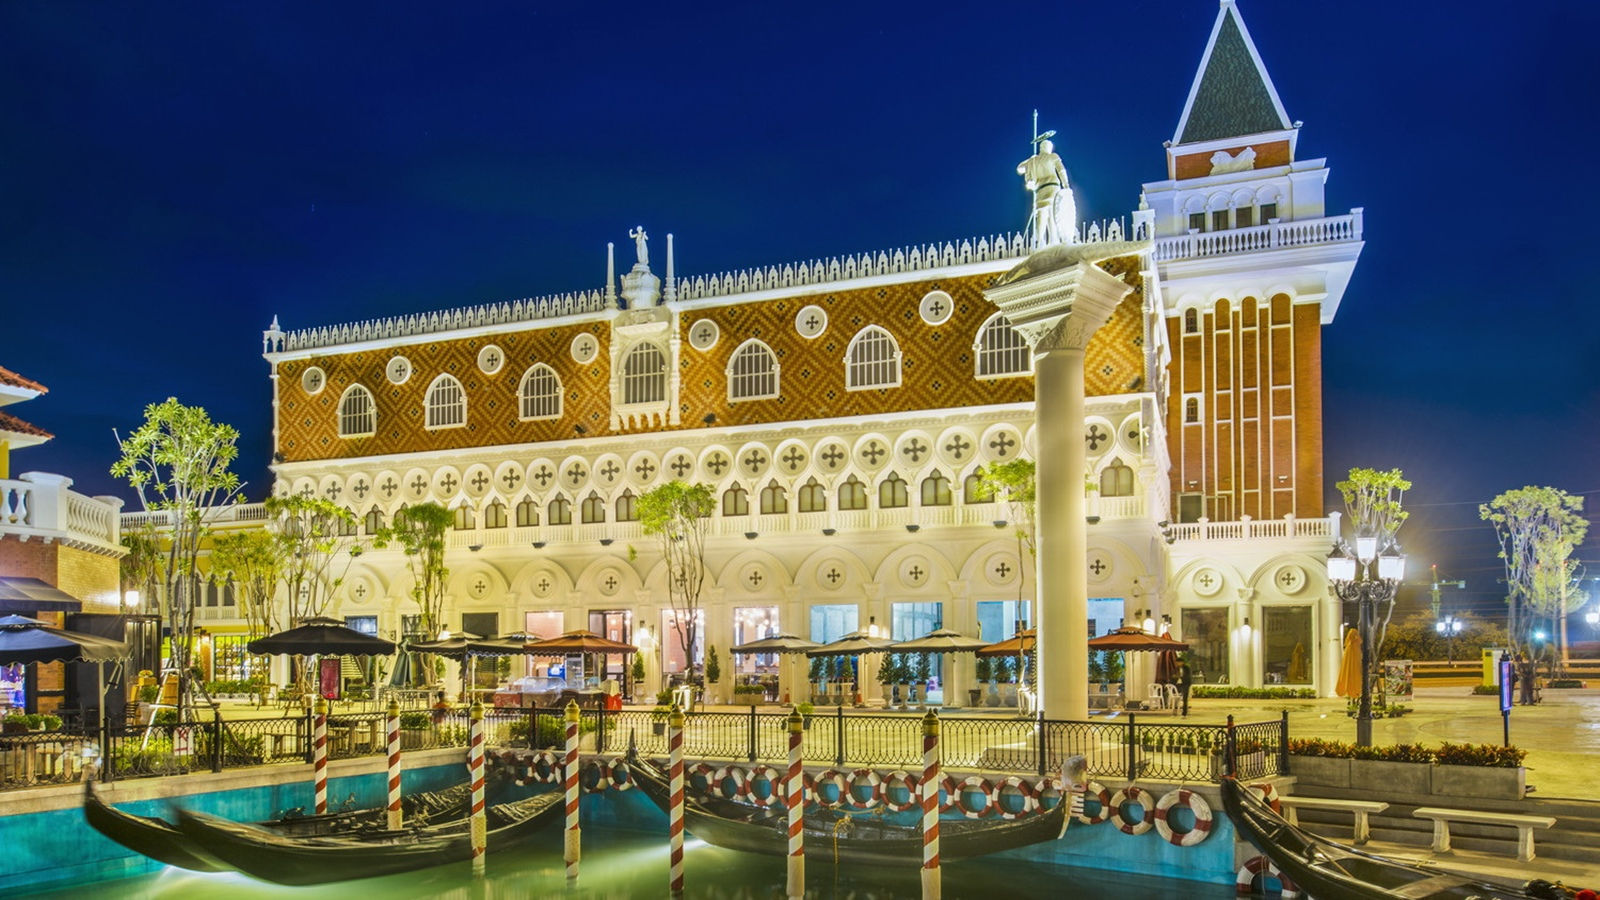 The Venezia Hua Hin Shopping Village